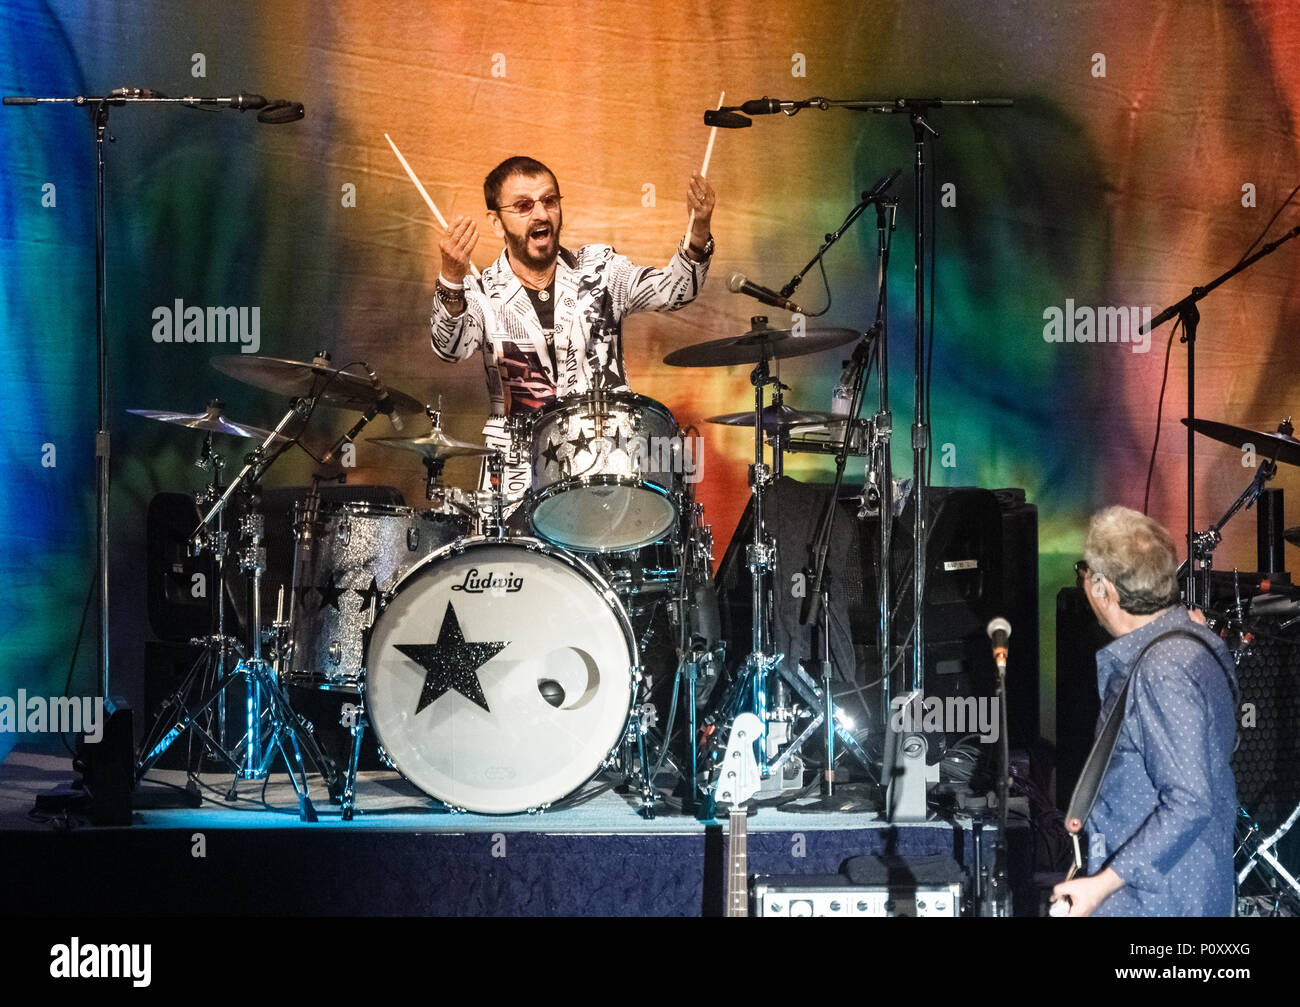 9 June 2018, Flensburg, Germany: The British musician Ringo Starr performs for the start of his Germany tour. Photo: Markus Scholz/dpa Credit: dpa picture alliance/Alamy Live News - Stock Image